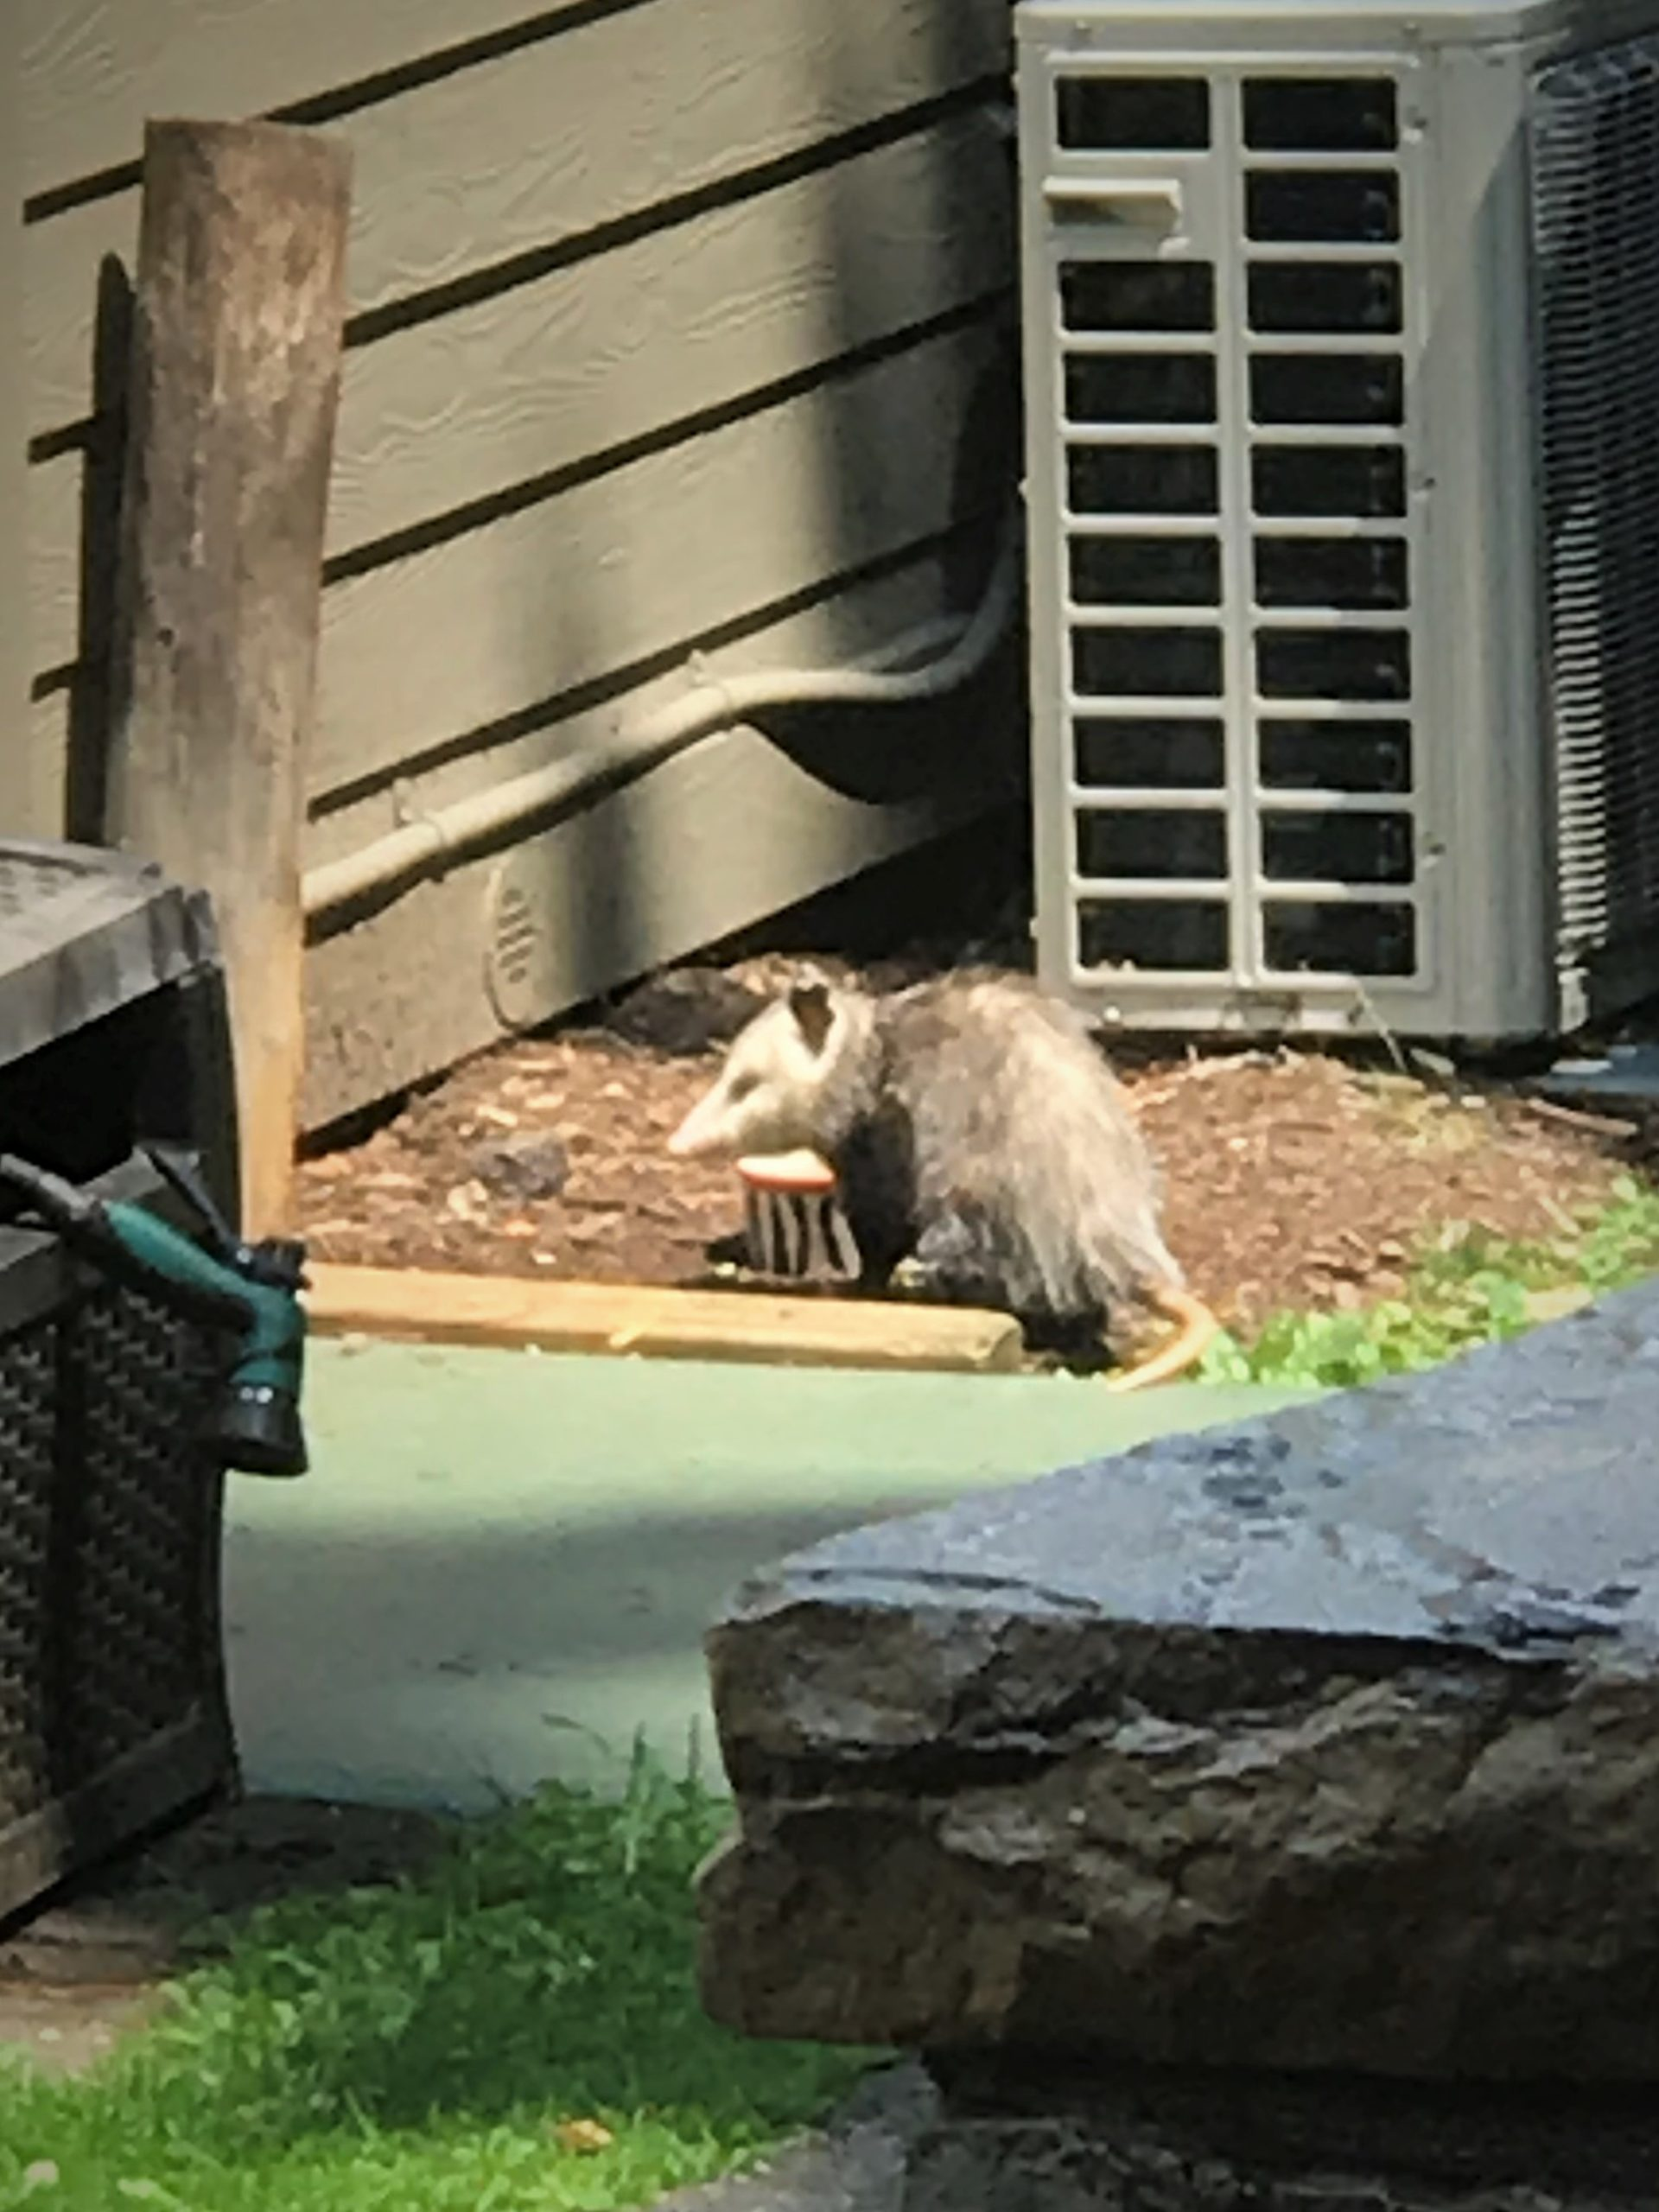 Polly the grey possum eating food from the pet bowls by thre kitchen door